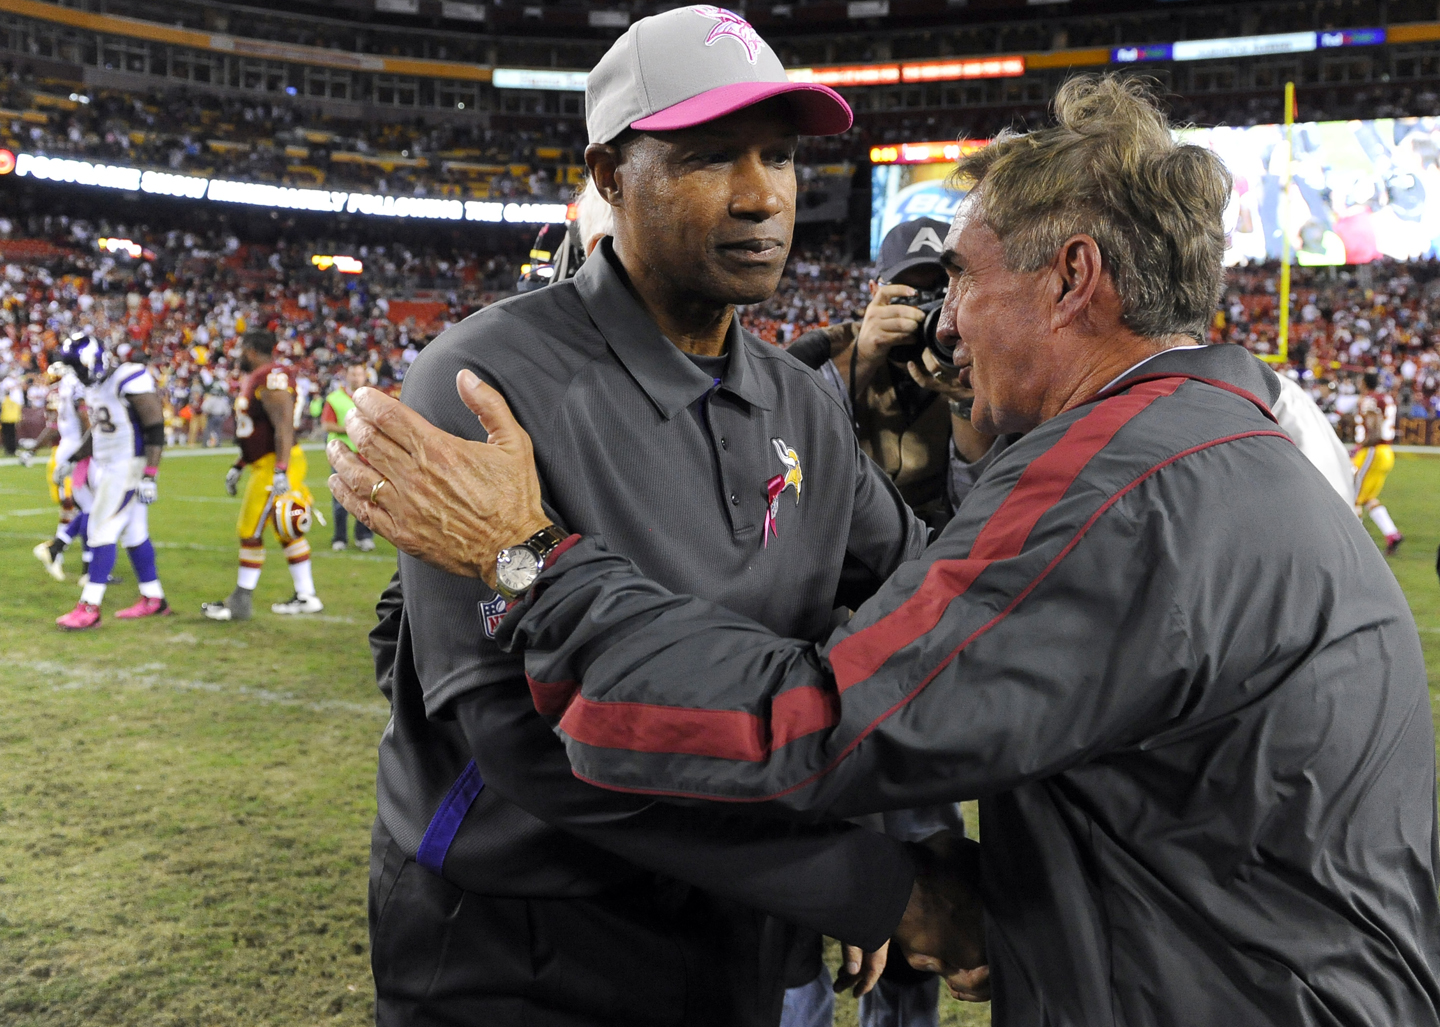 Minnesota Vikings head coach Leslie Frazier is greeted at midfield by Washington Redskins head coach Mike Shanahan after an NFL football game, Sunday, Oct. 14, 2012, in Landover, Md. Shanahan beat out Frazier for the head coaching job with the Redskins in 2010.